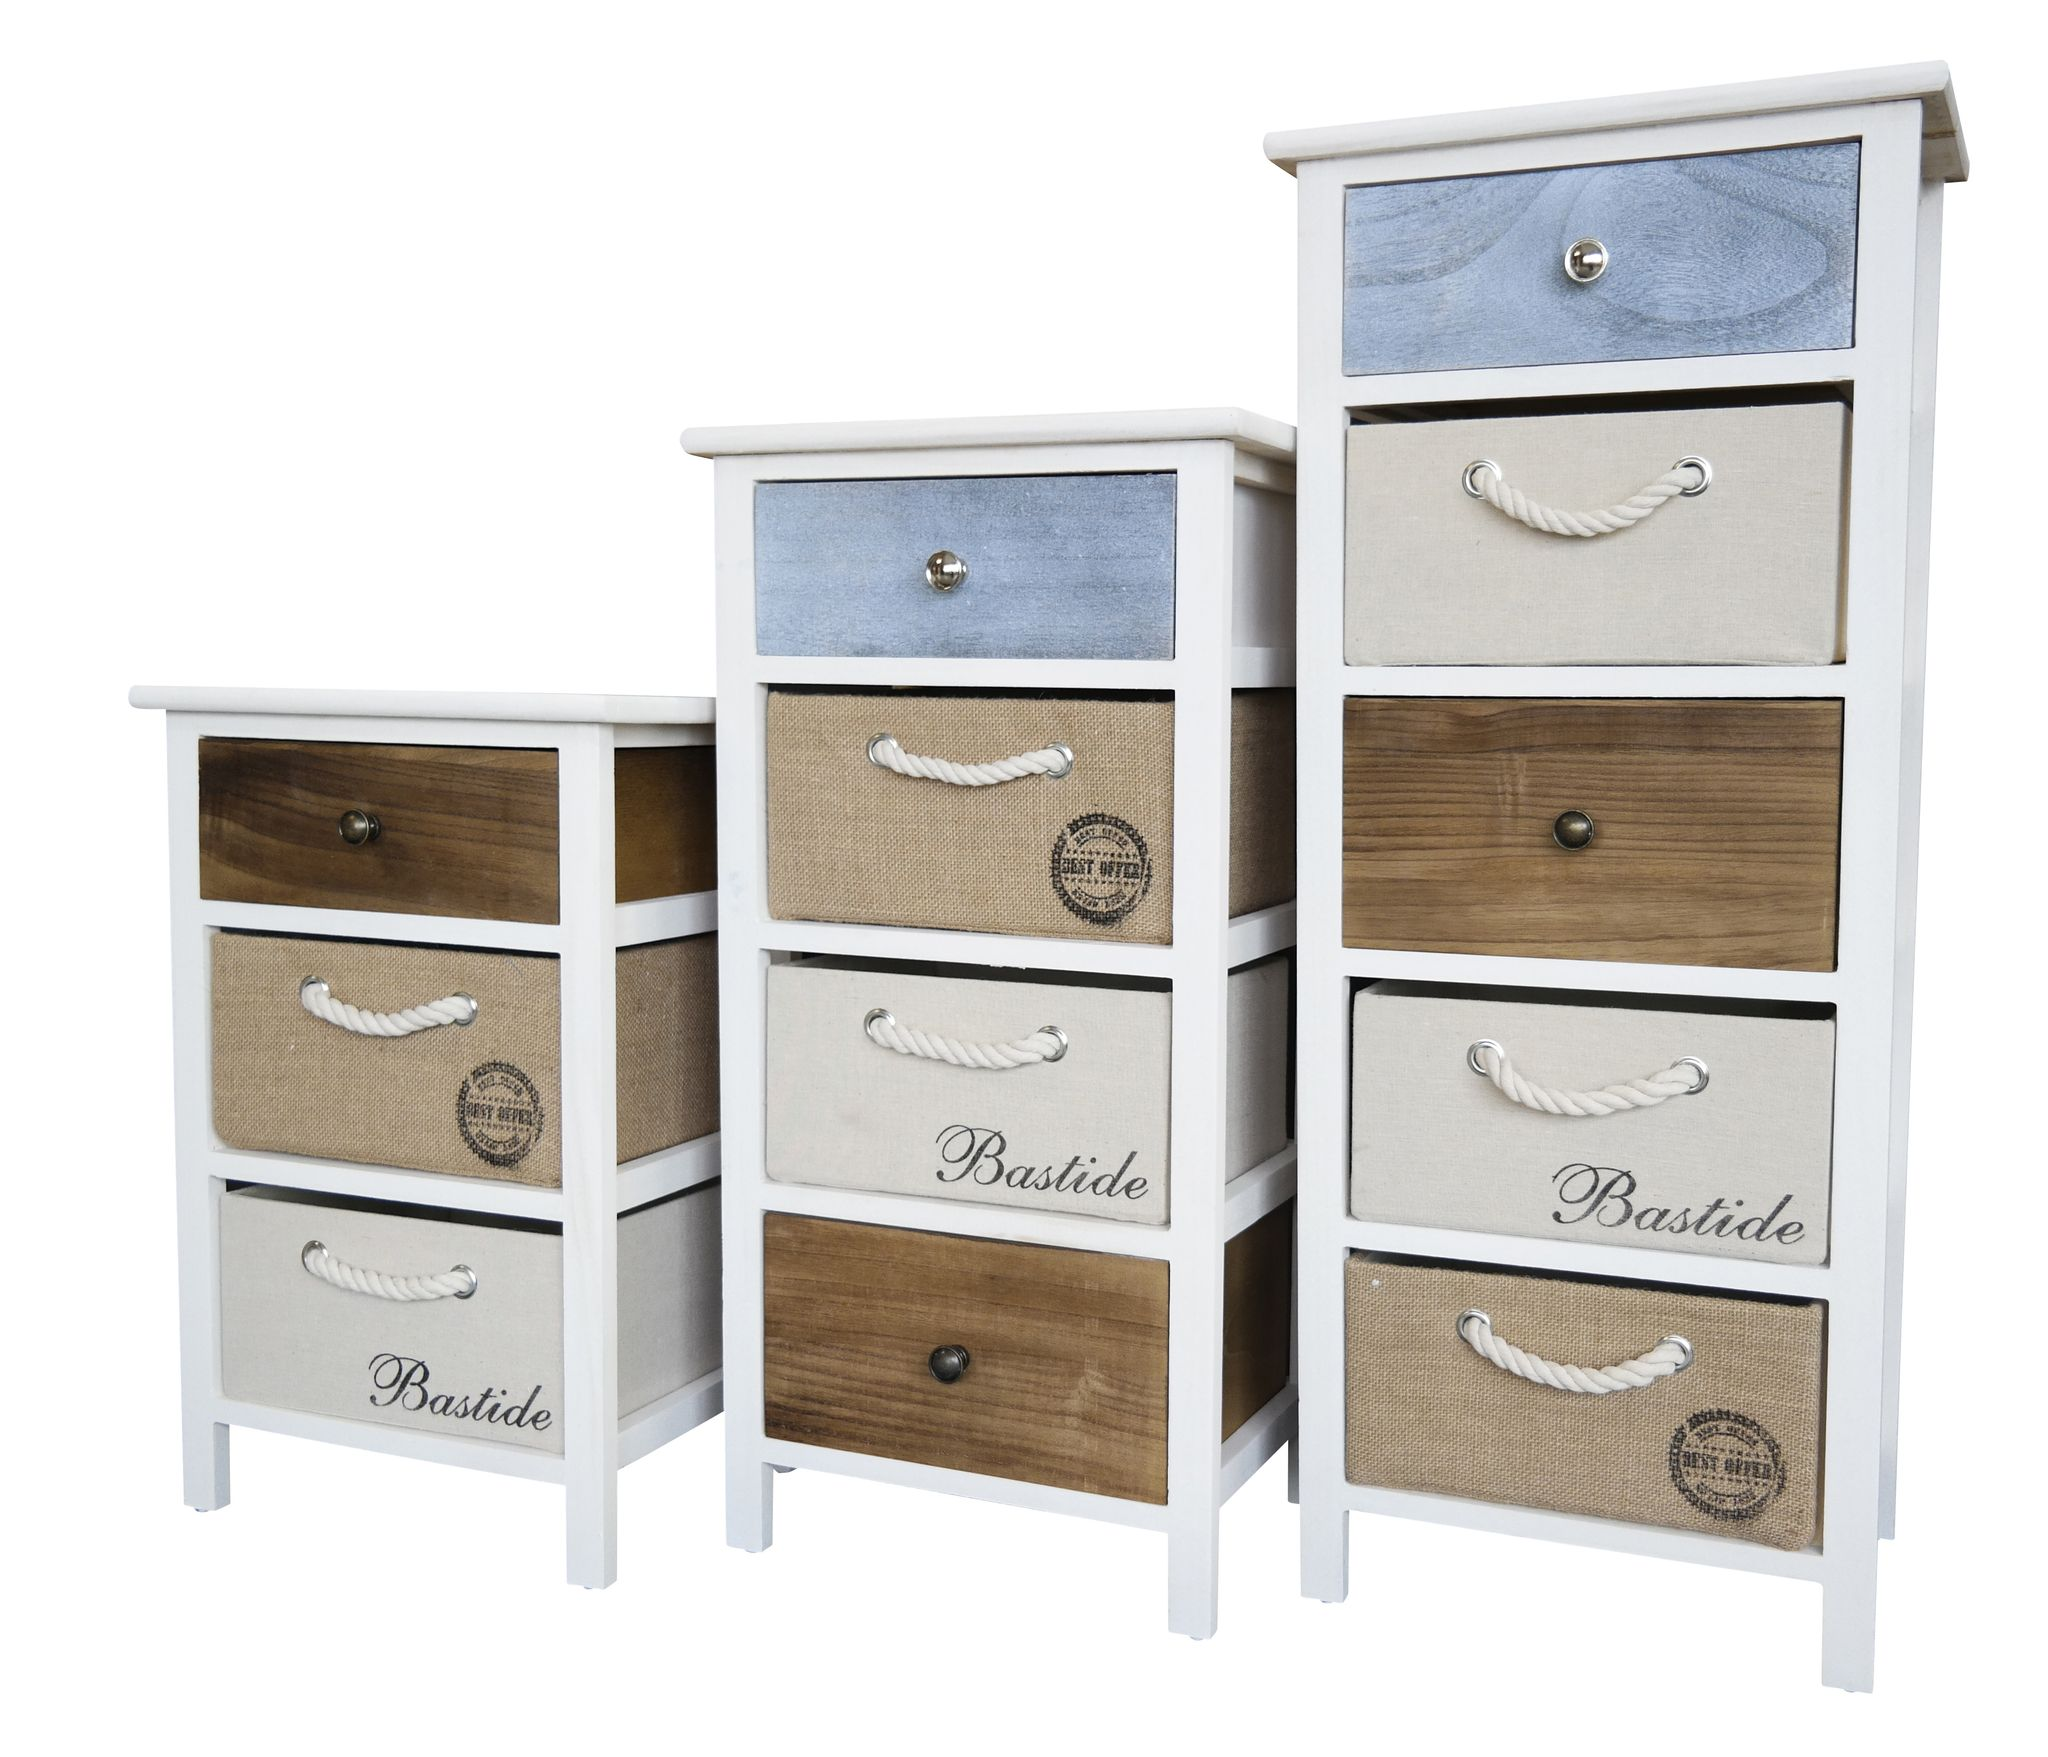 kommode schrank mit schubladen bunt landhaus shabby chic vintage wei k rbe ebay. Black Bedroom Furniture Sets. Home Design Ideas